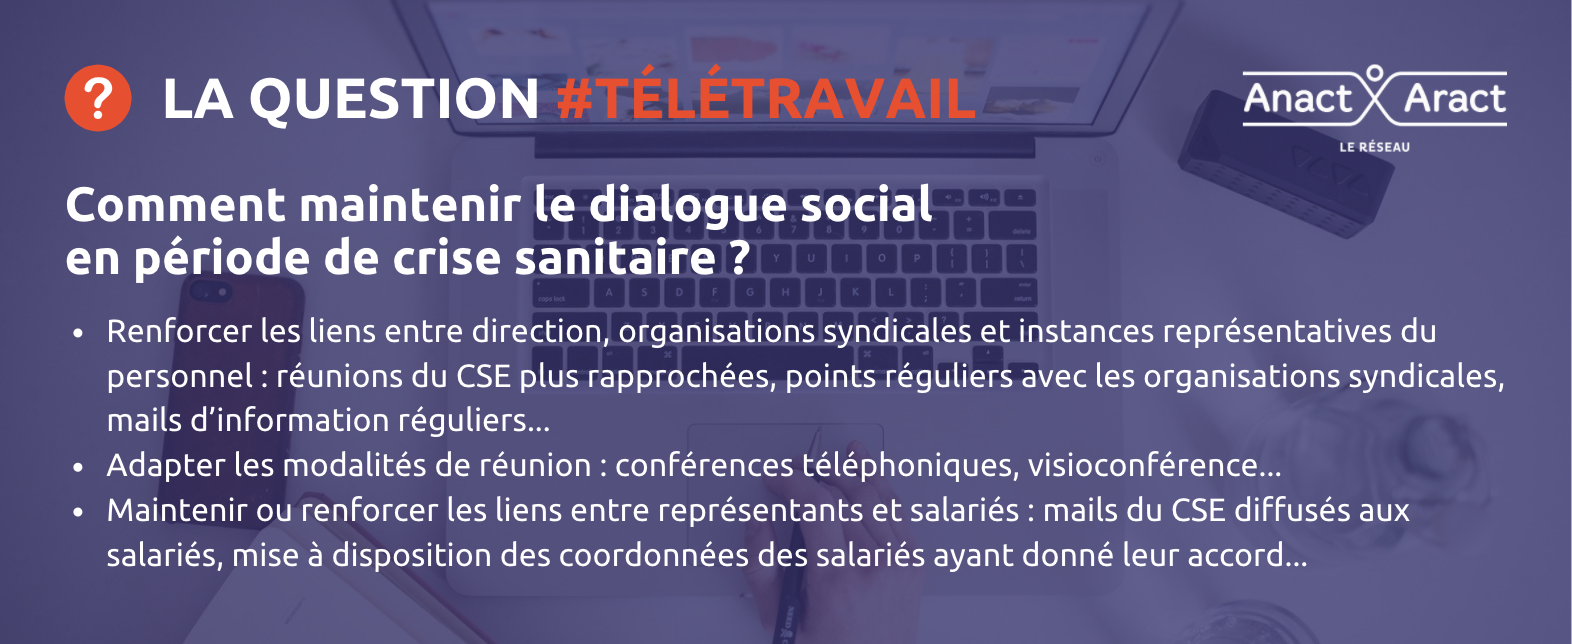 question télétravail 1